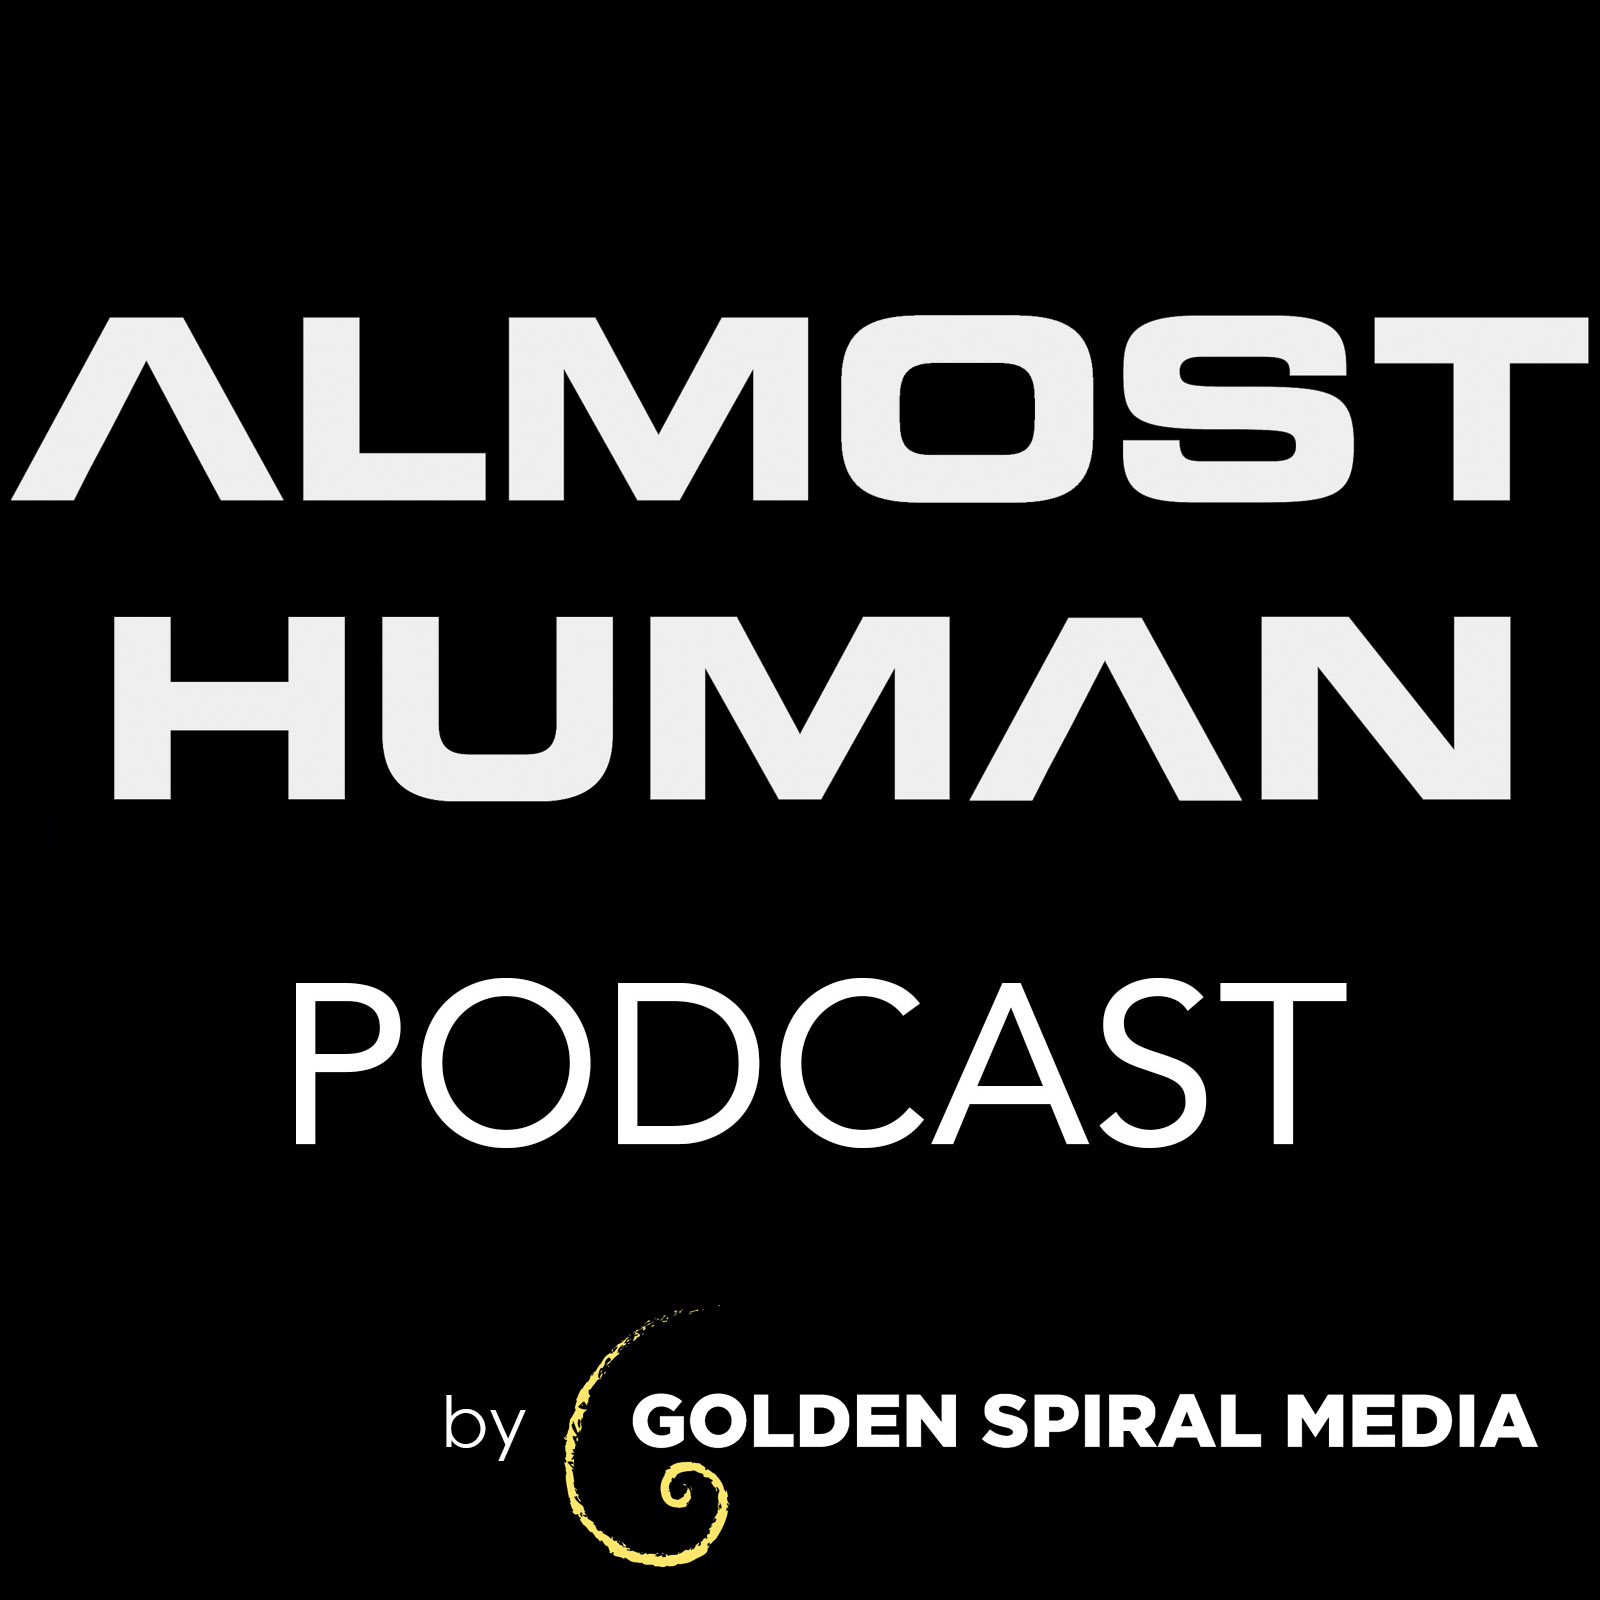 Almost Human Podcast